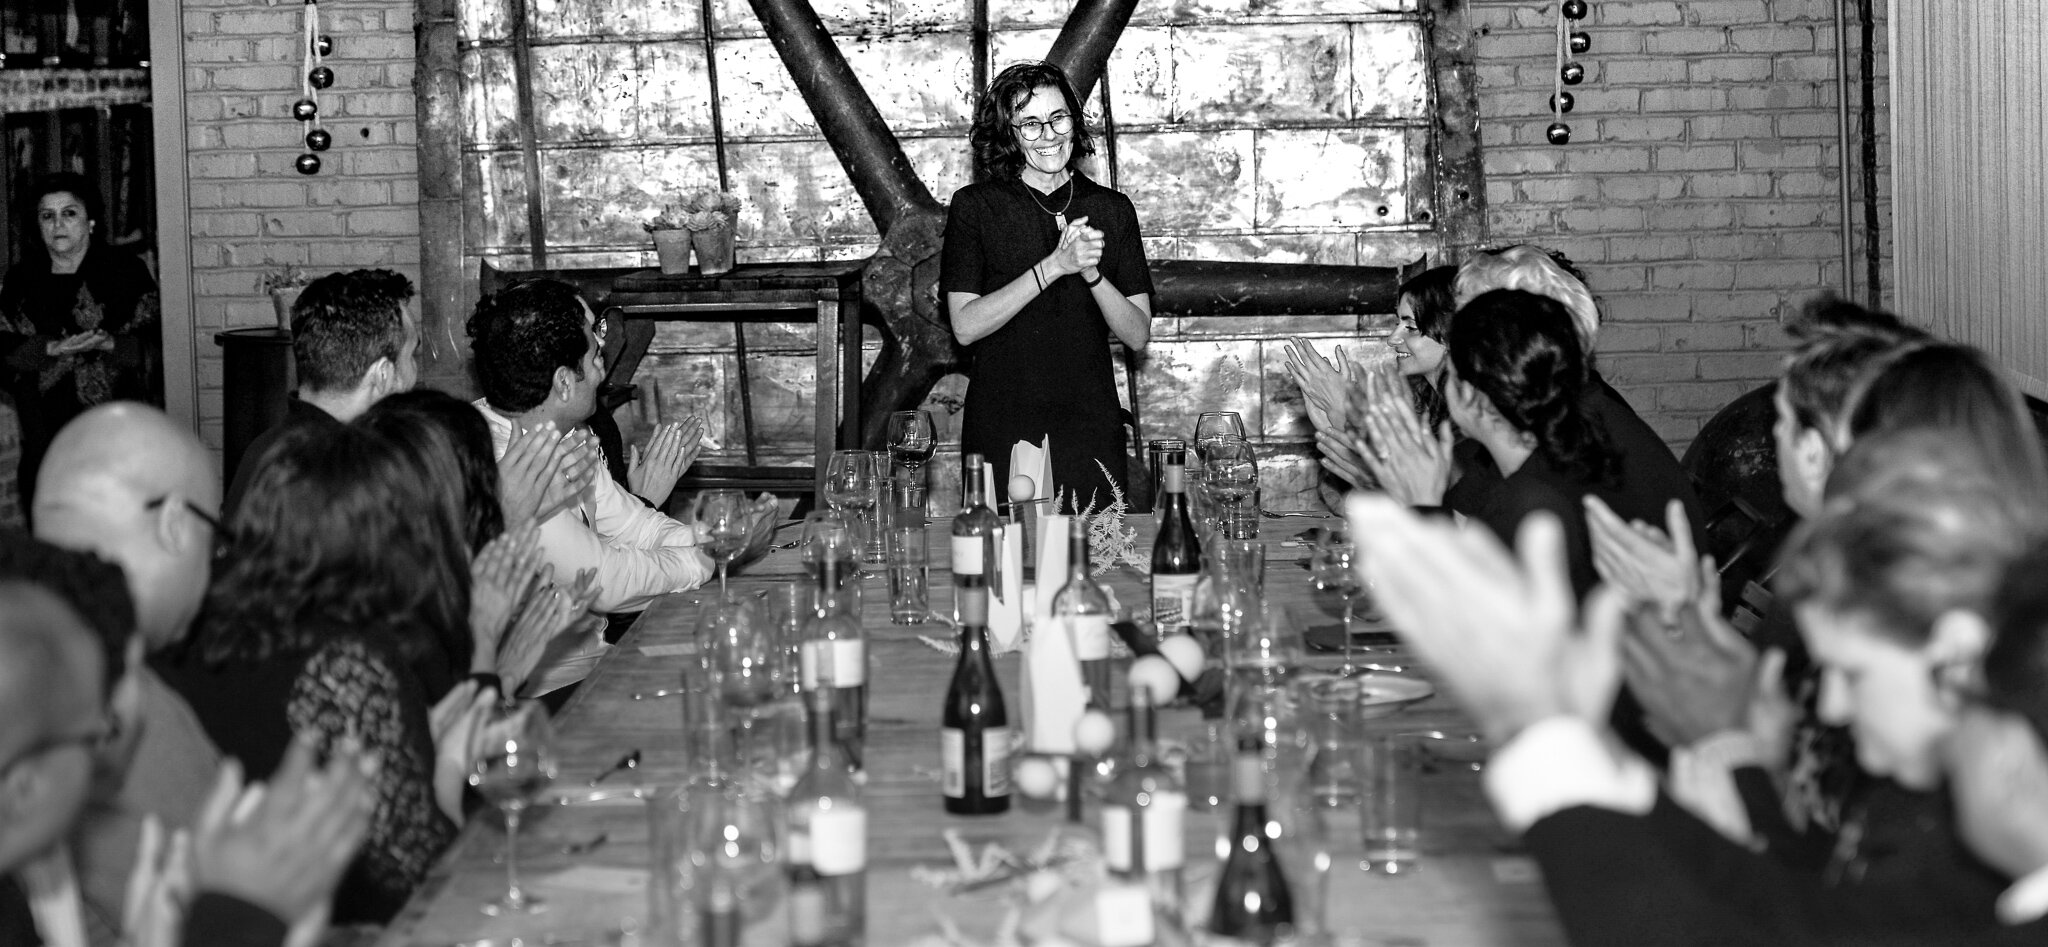 Chef Taria Camerino welcoming guests at the 2018 Holiday Dinner (image courtesy of Bedaruis Bell).